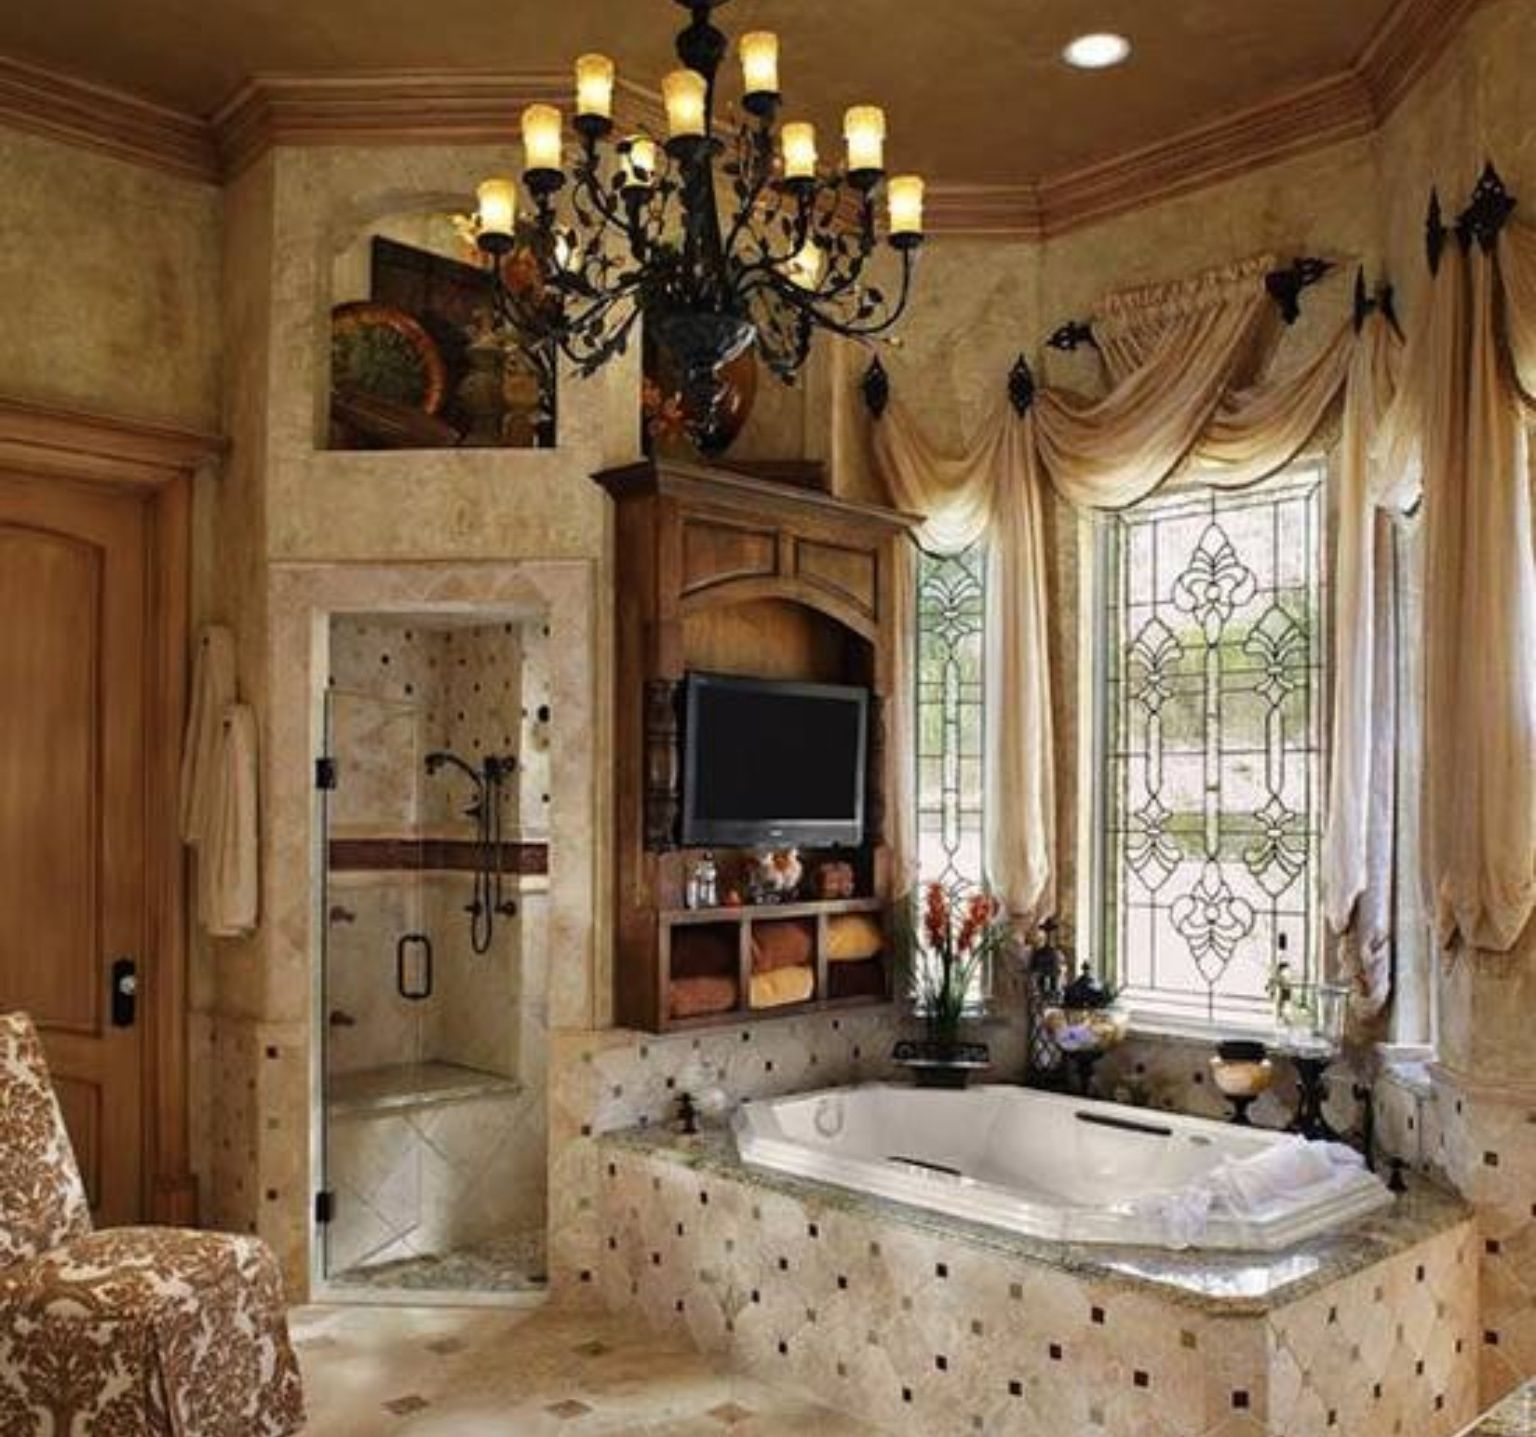 Gorgeous bathroom Window treatments ! | next house | Pinterest ...